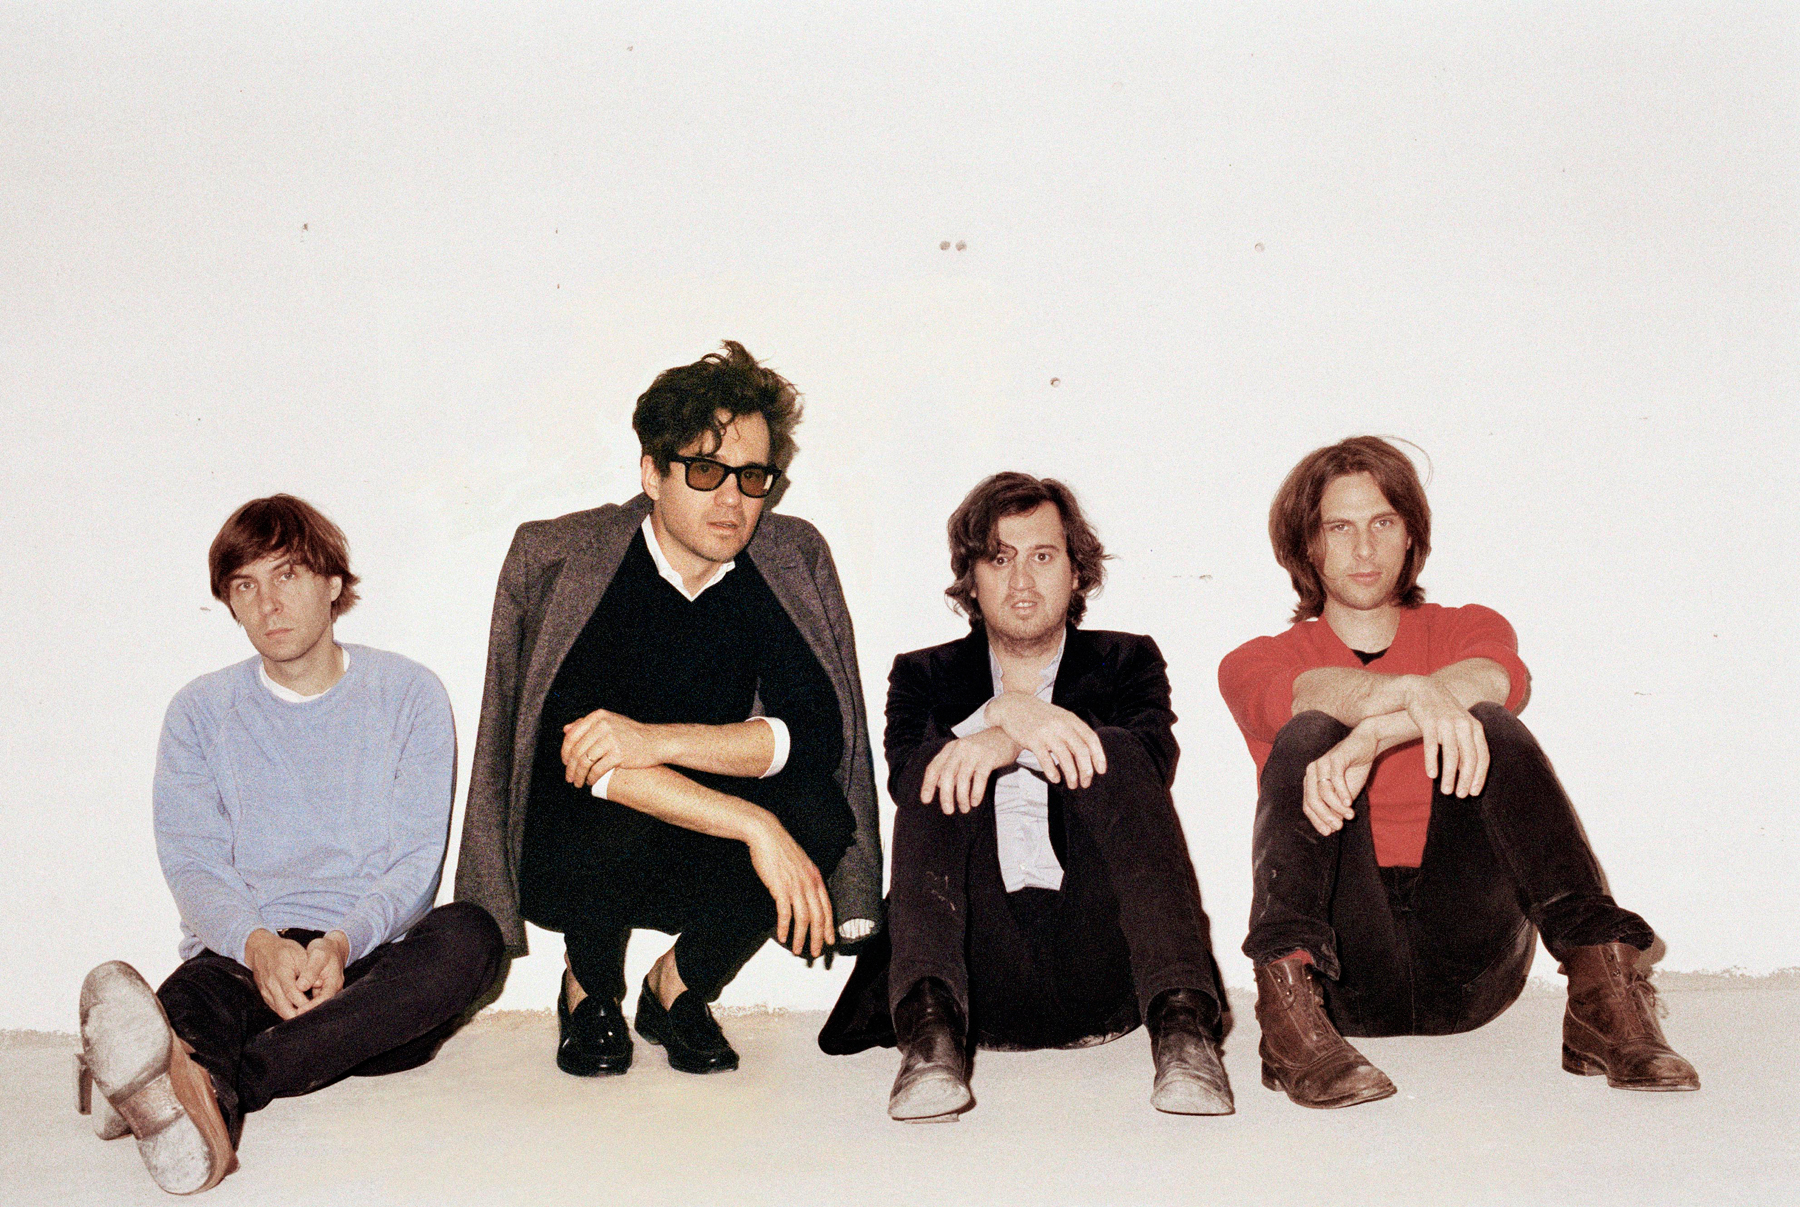 Phoenix 'Encourage a New Copyright Policy' in Open Letter